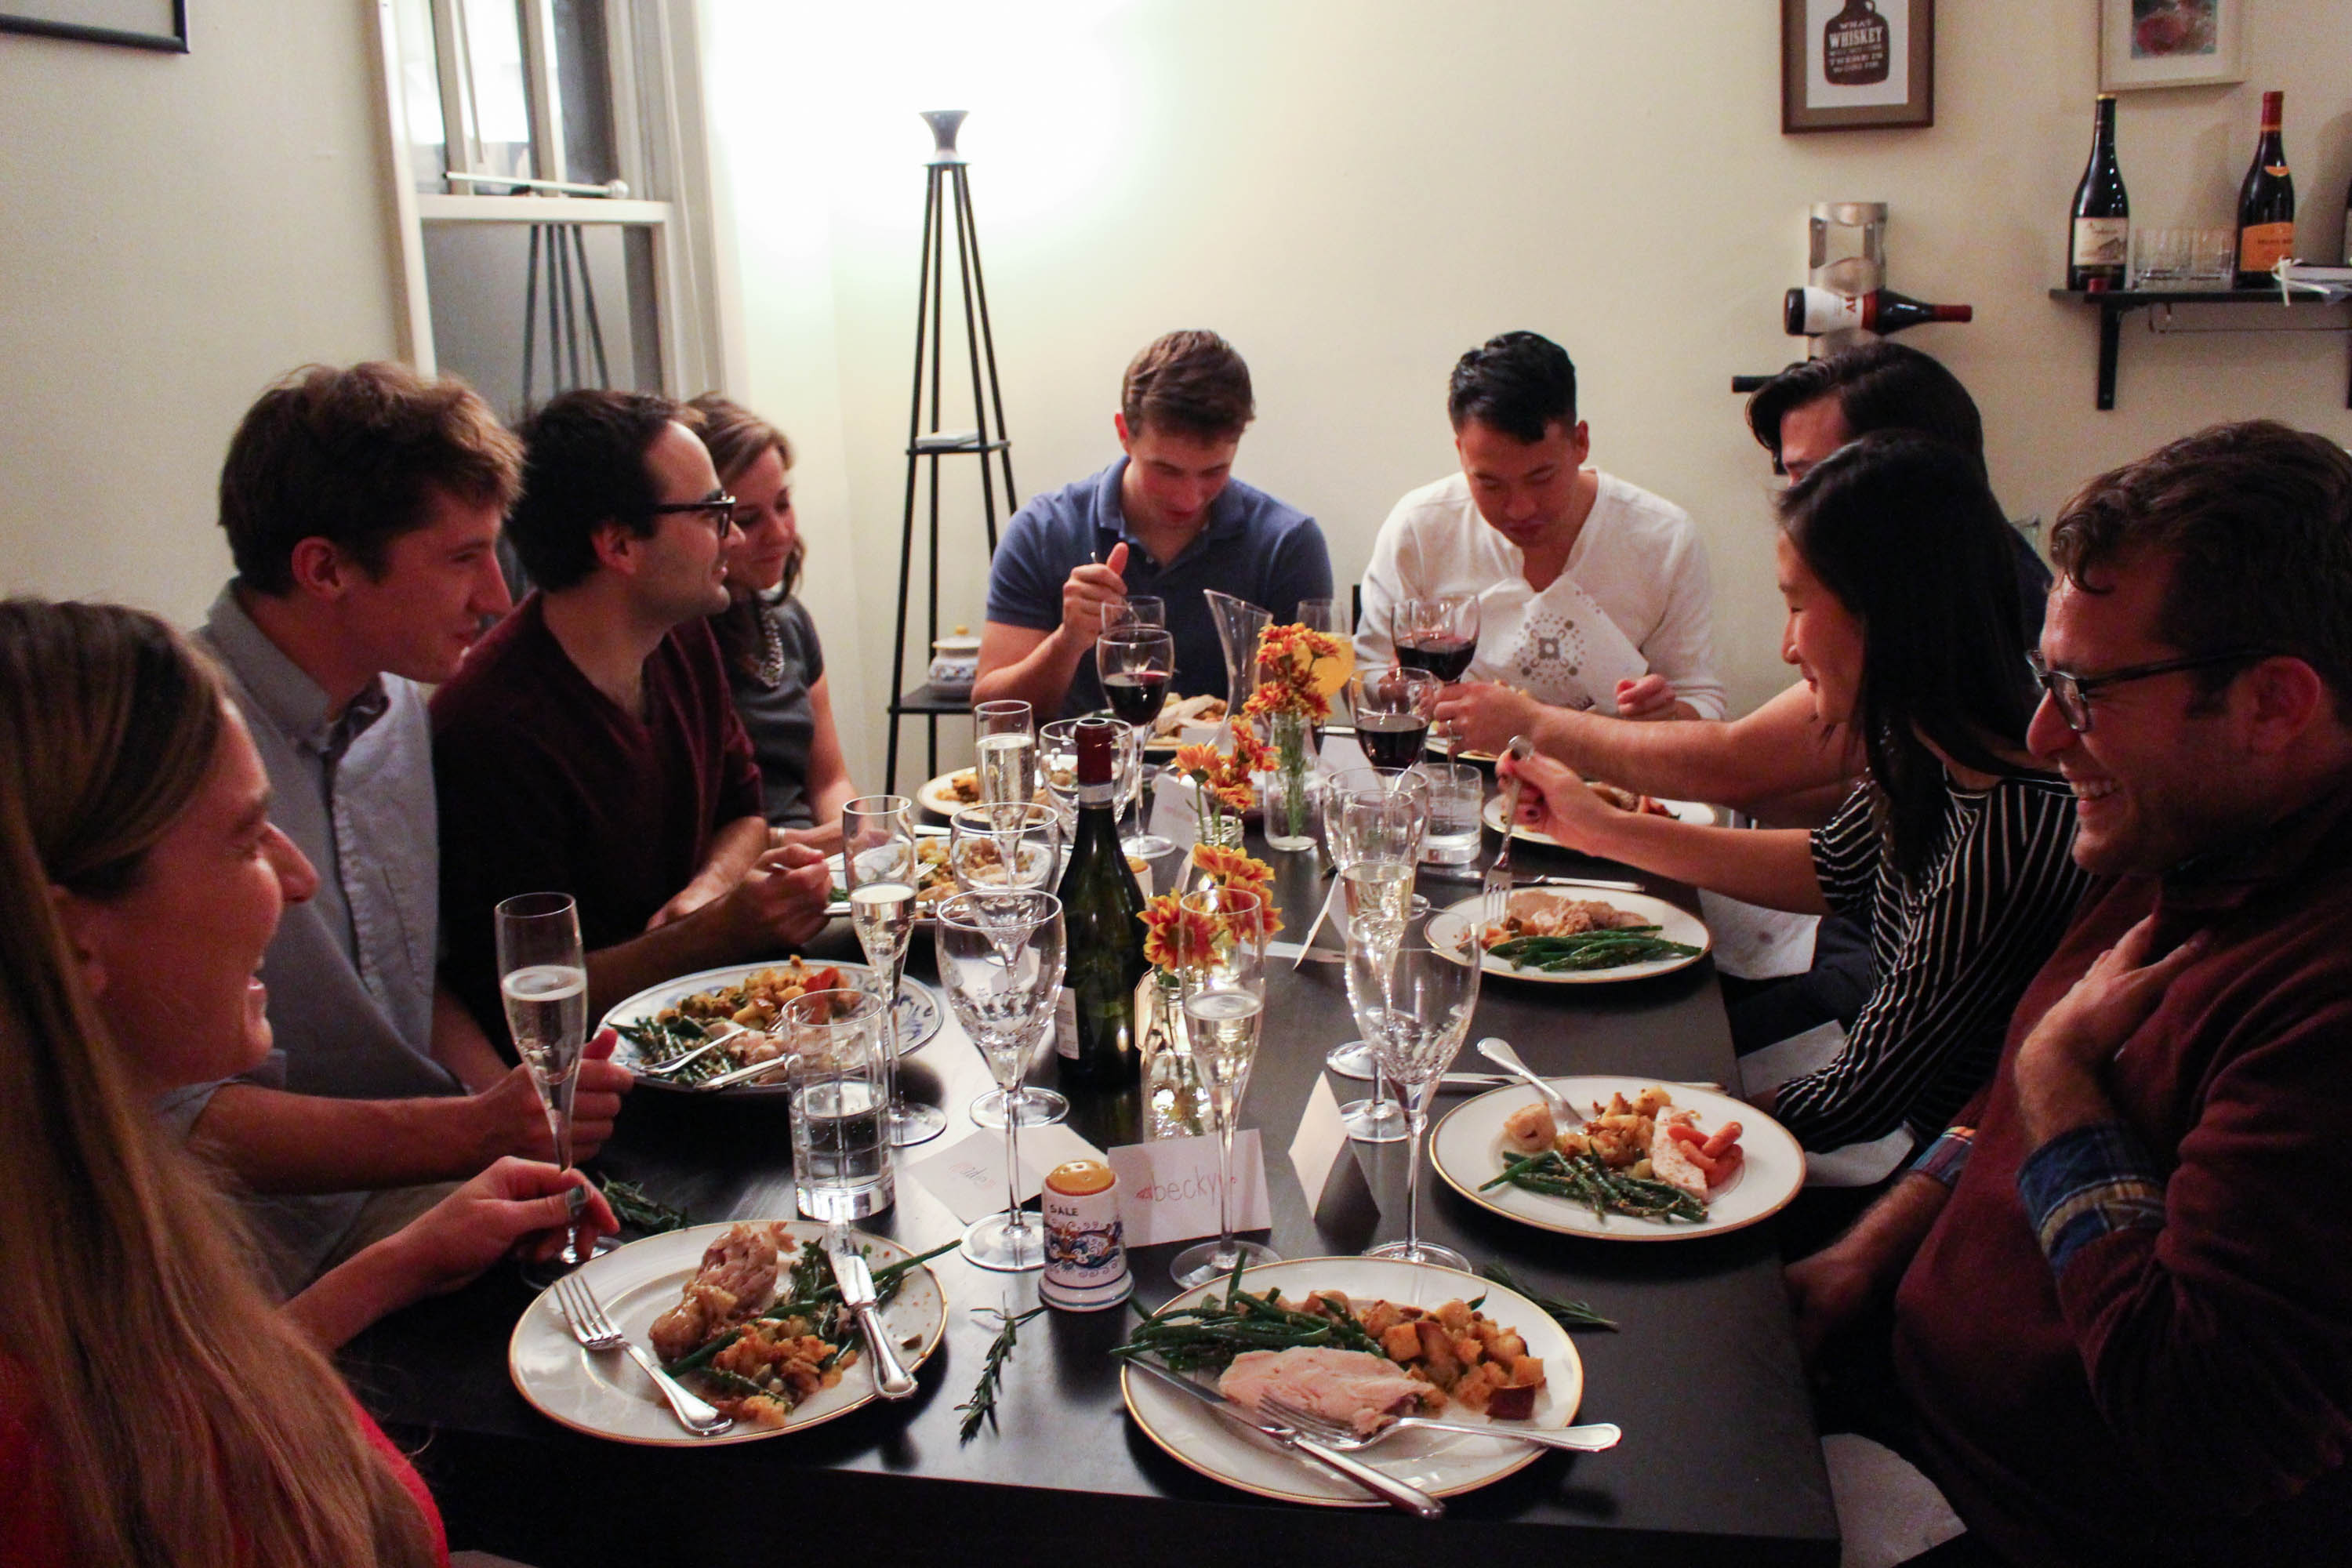 Tips for Hosting a Dinner Party via The District Table